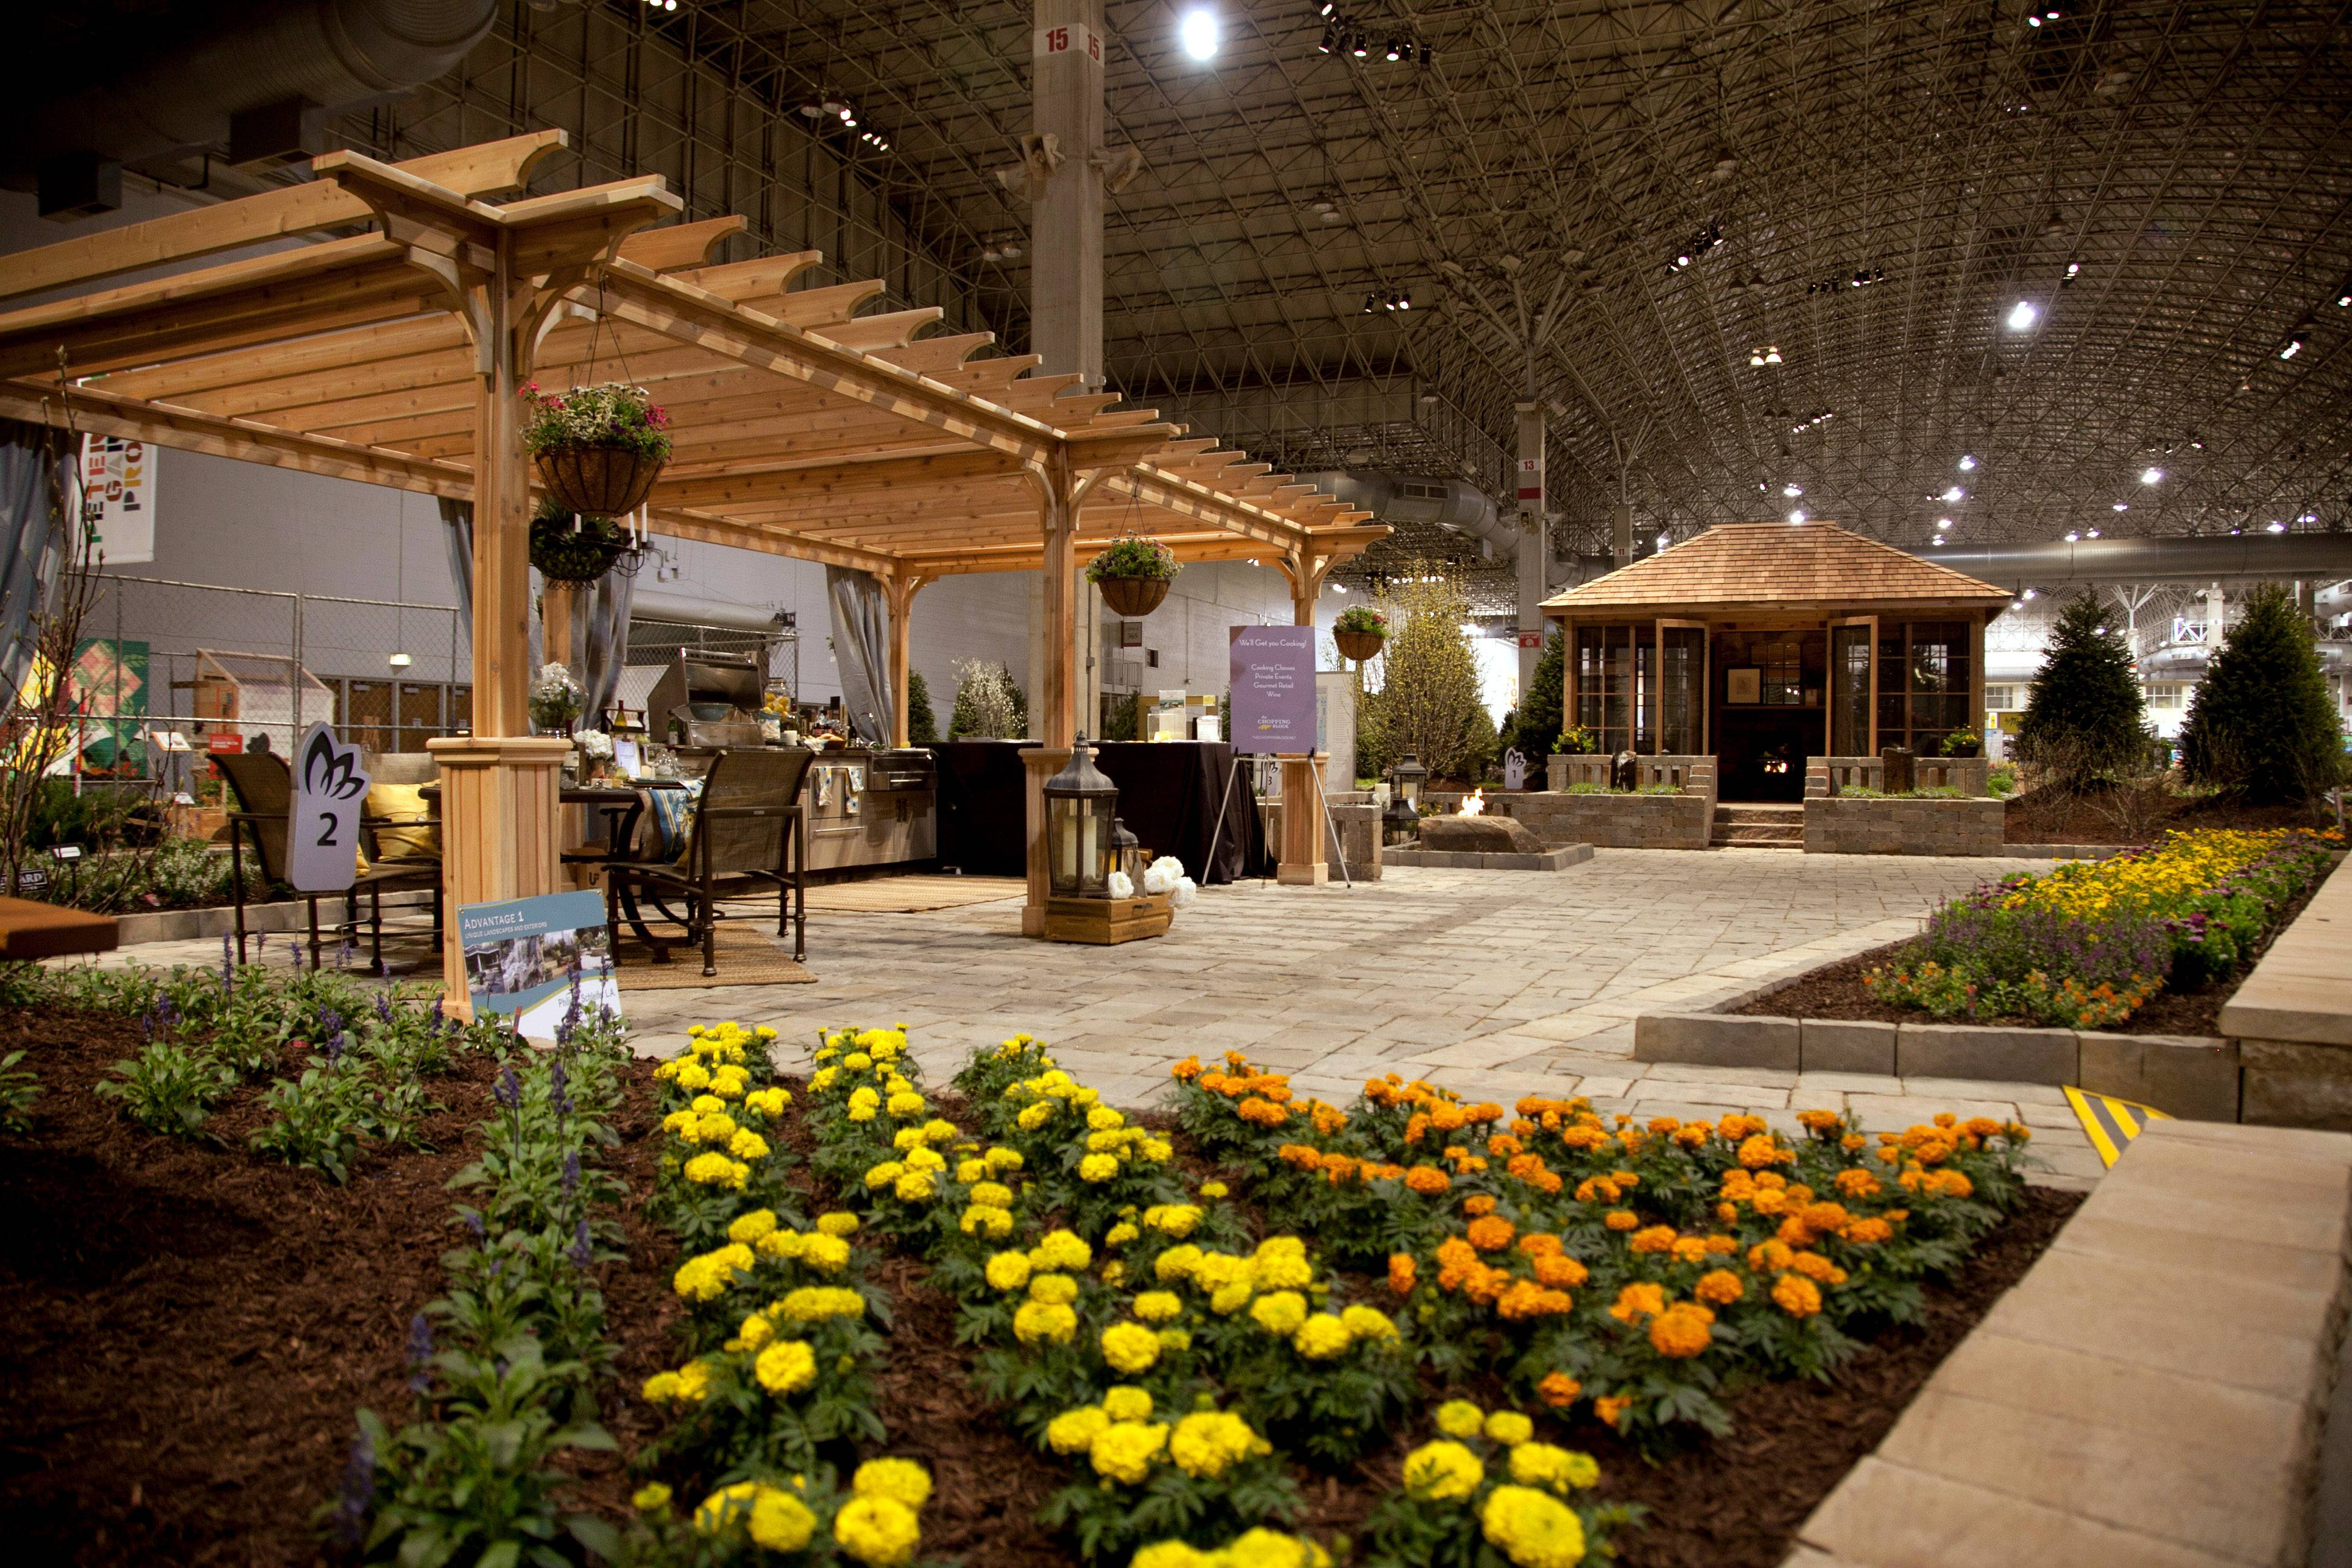 This is an overall view of the 2013 Chicago Flower & Garden Show. This year, the show runs March 15-23 at Navy Pier.